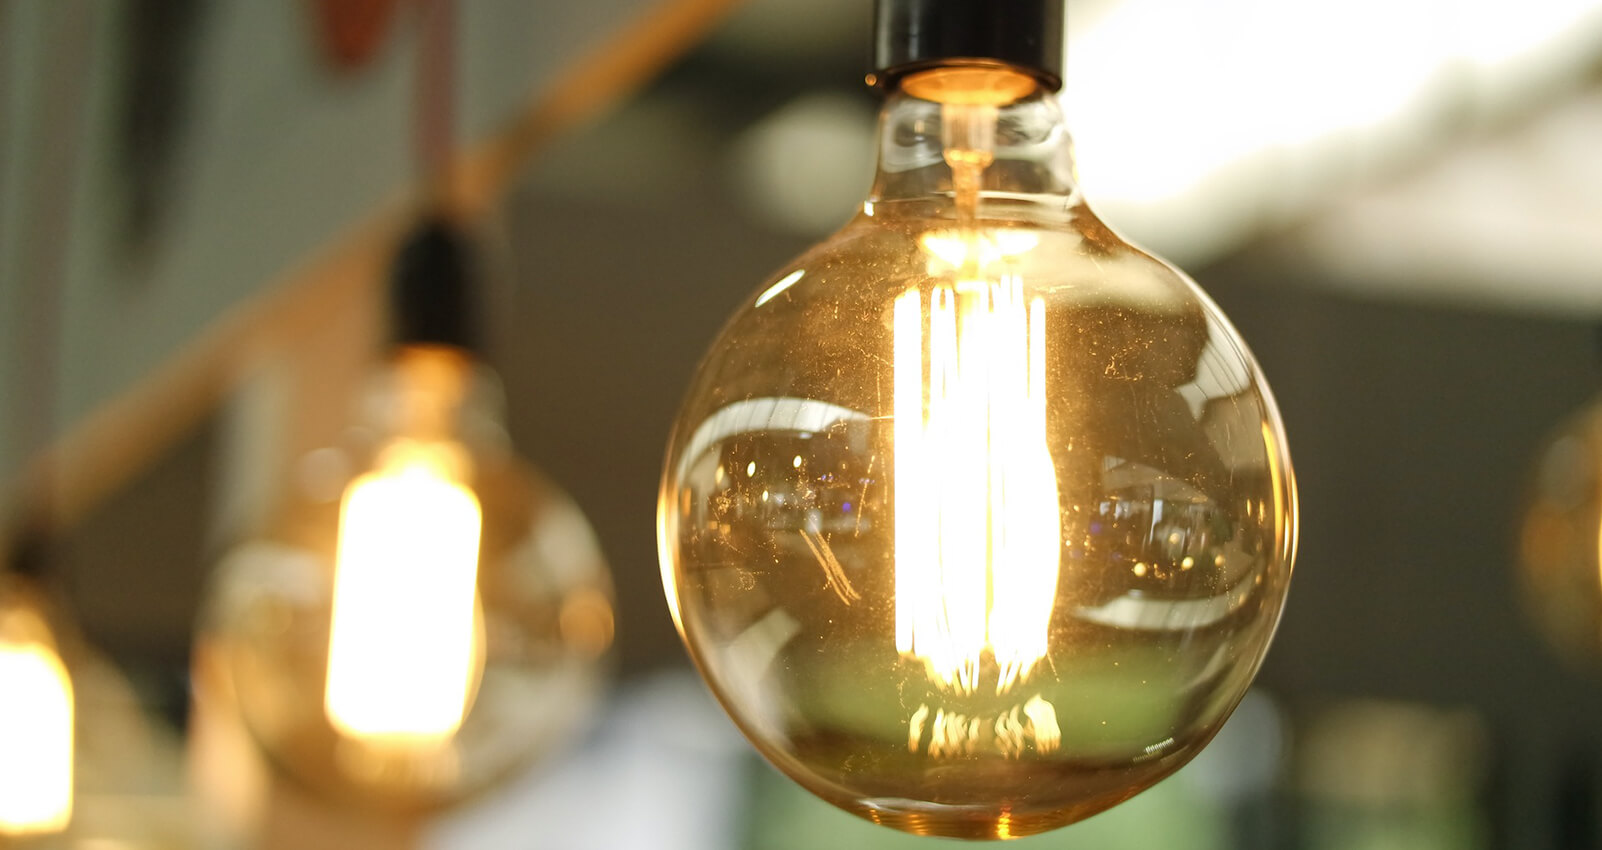 Lightbulb moment - ideas, invention and evolution concept - close up of light fixture